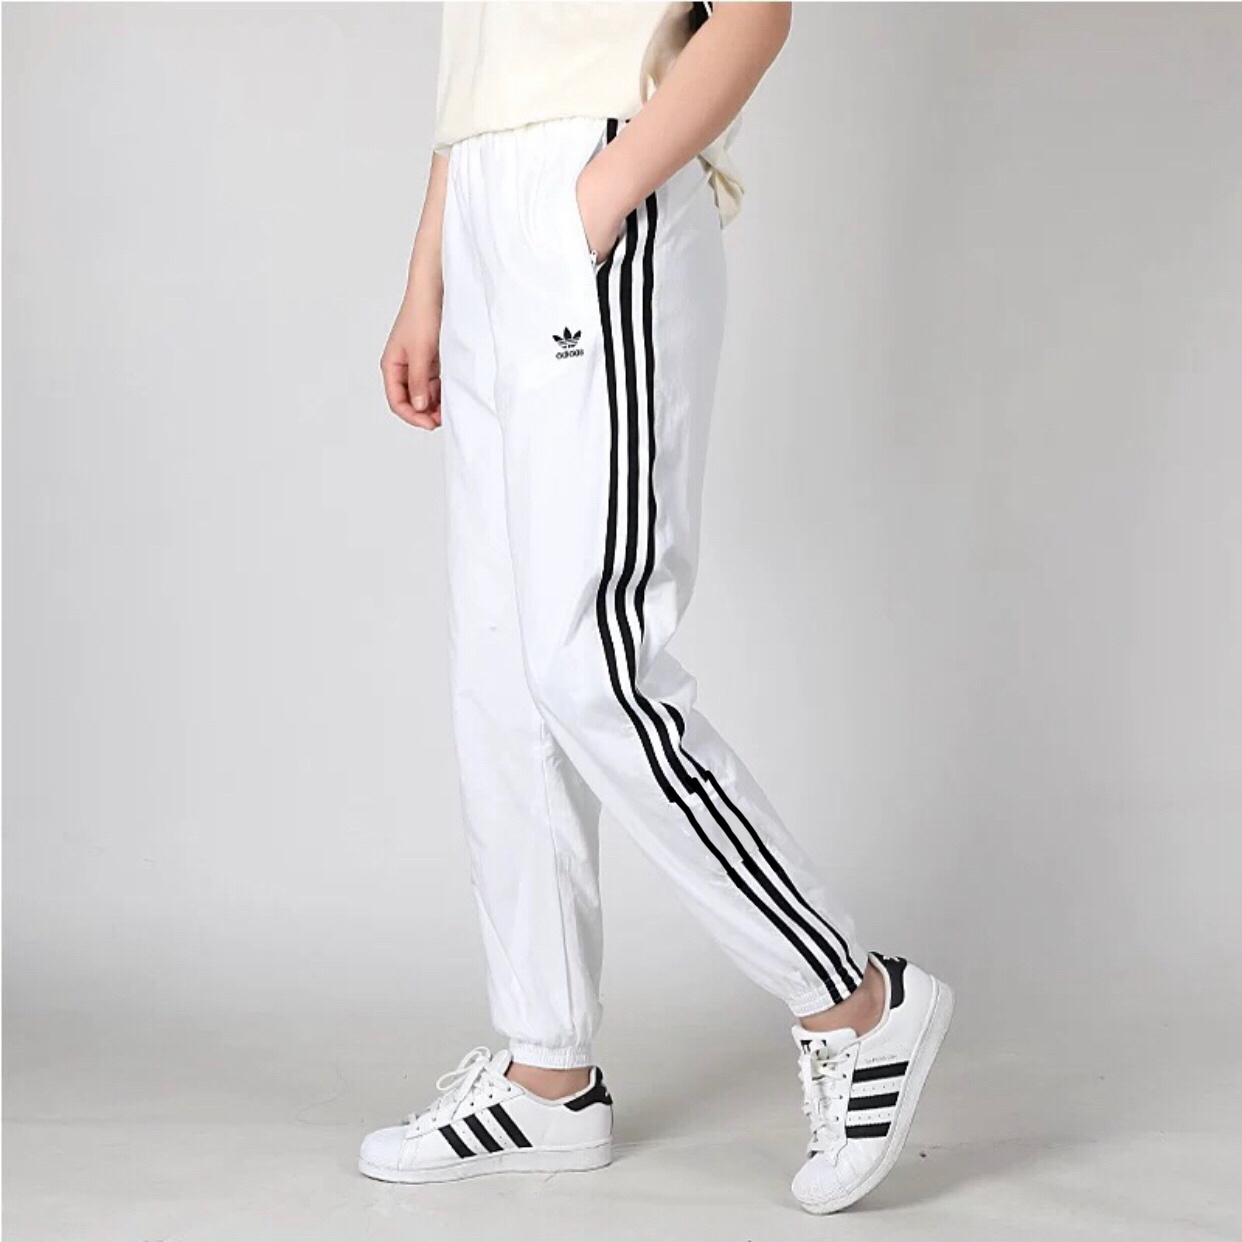 3 lines Adidas Jogger Pants for men